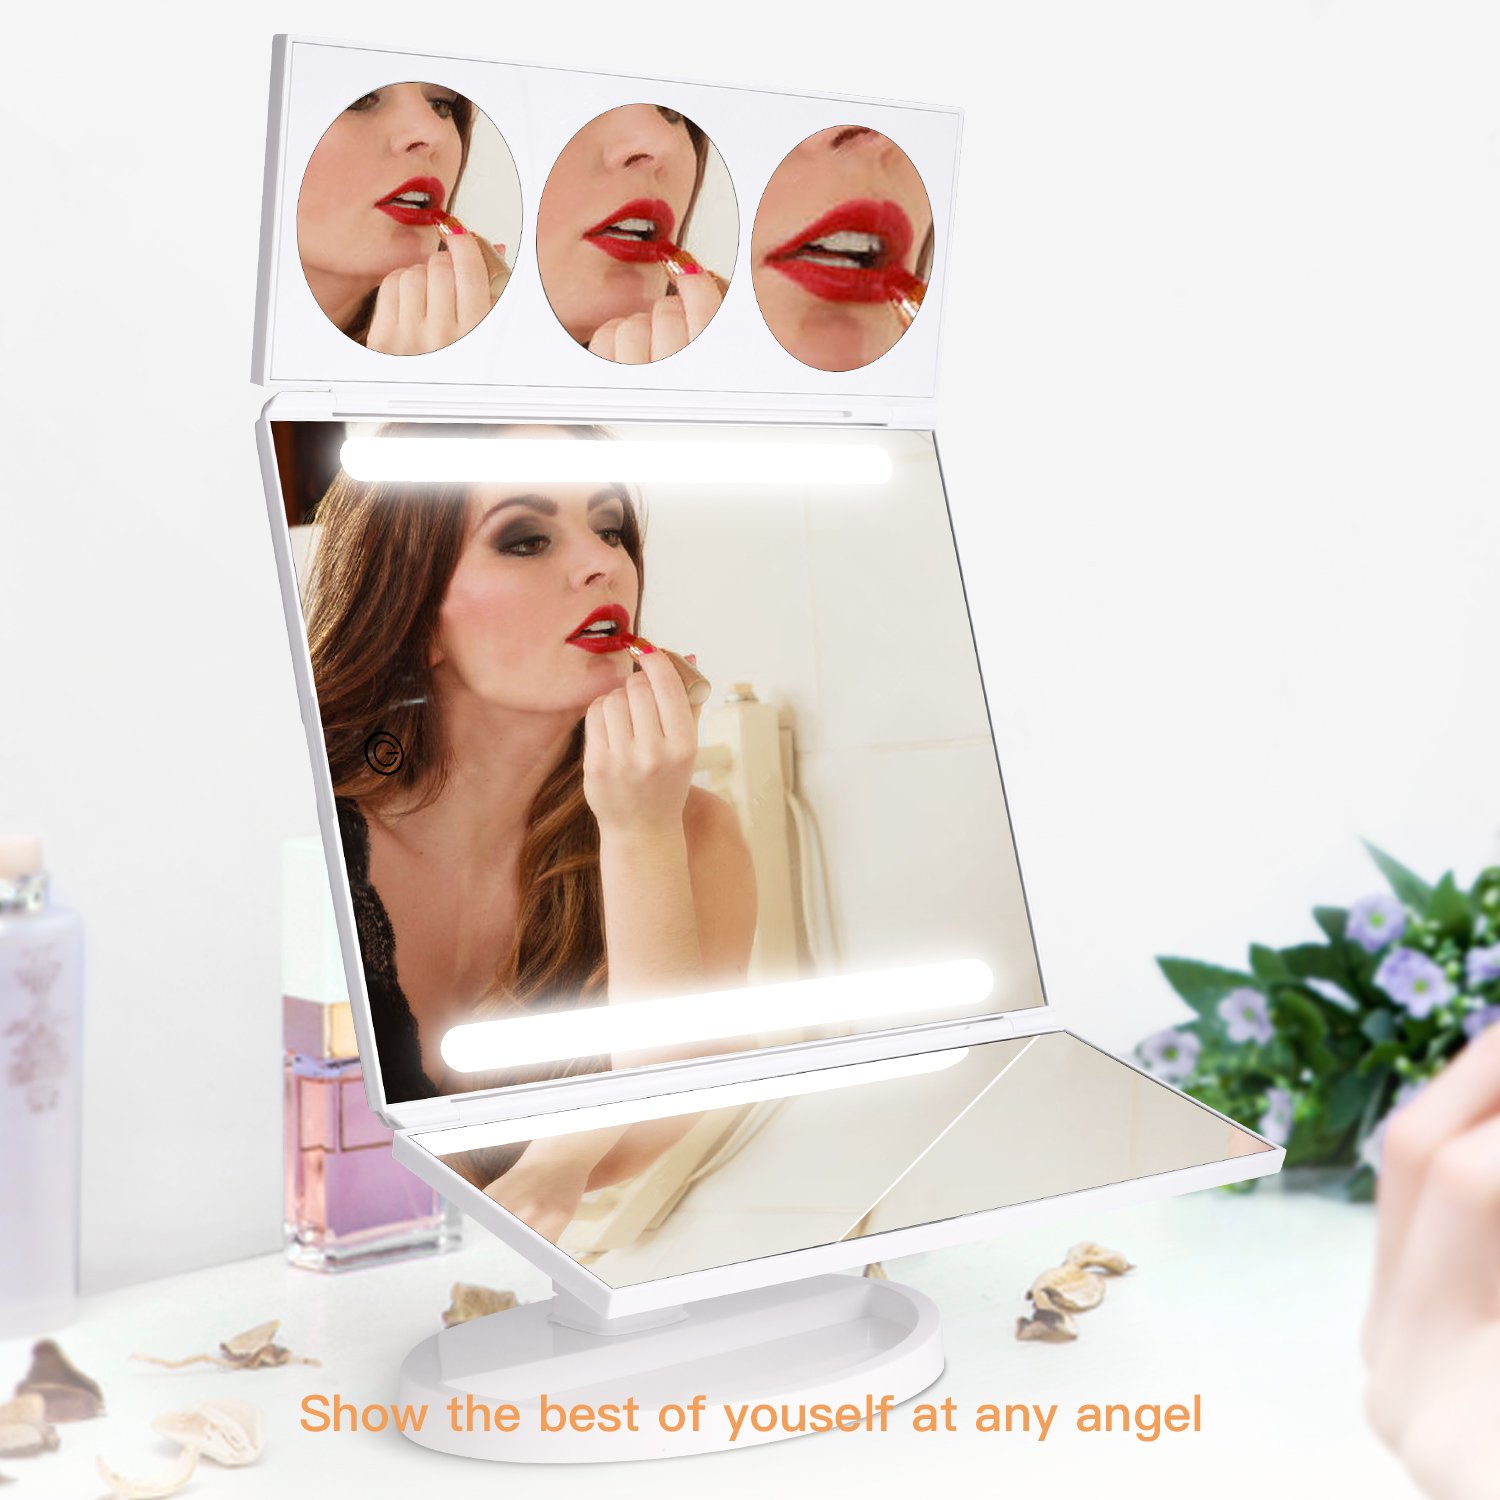 BESTOPE Makeup Mirror Oversize 18.8inch Lighted Vanity Mirror with 10X/5X/3X Magnification, 26 LED Light Trifold Cosmetic Mirror with 360° Rotation and Touch Screen by BESTOPE (Image #6)